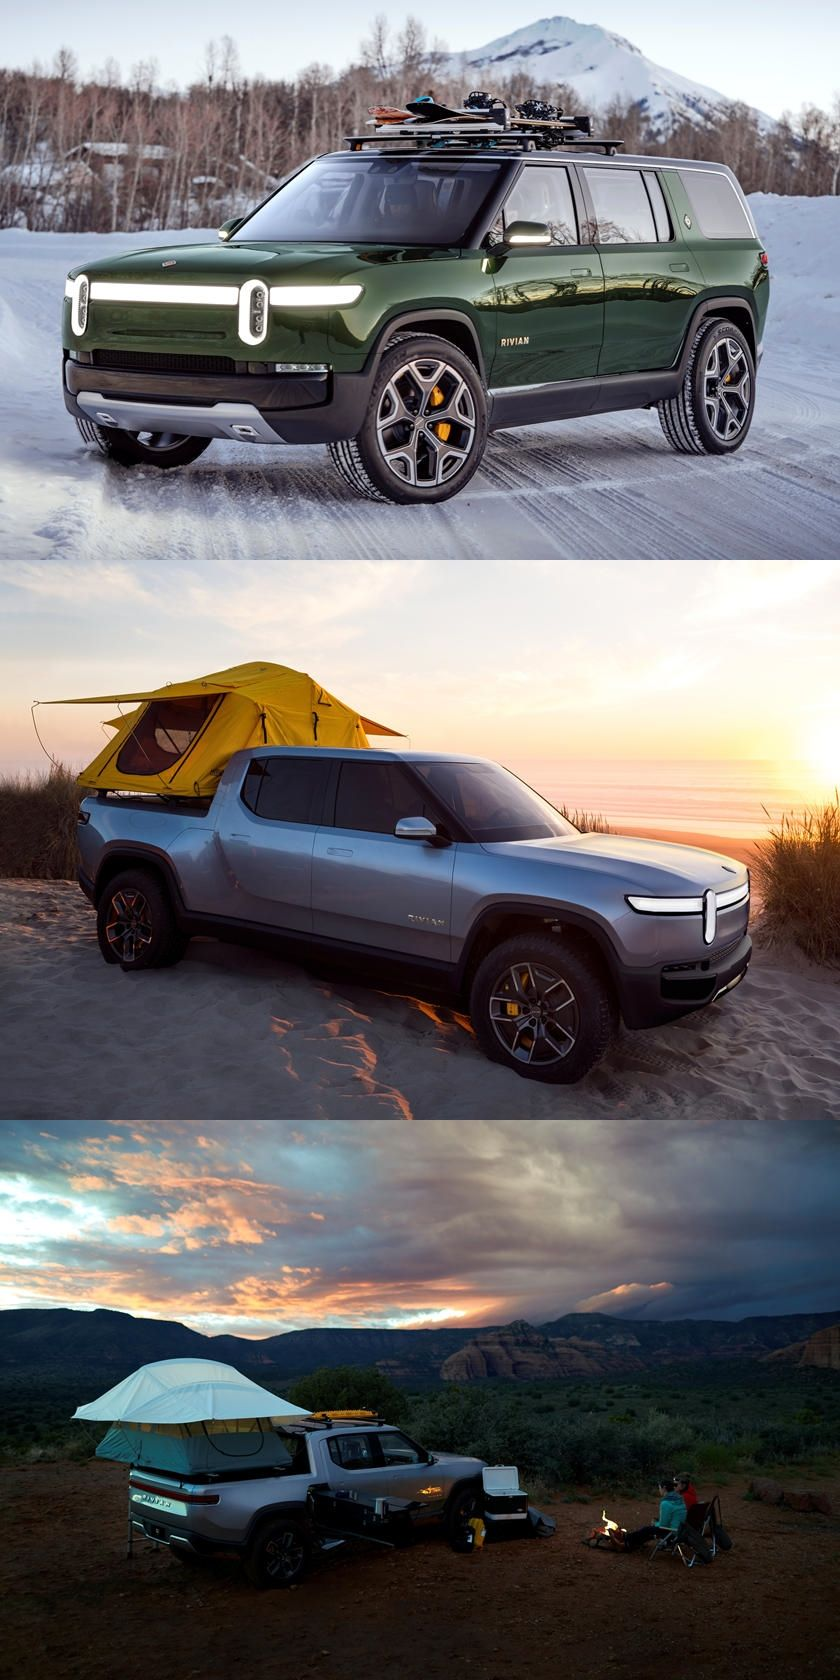 Rivian Plots New Way To Challenge Tesla. The first step